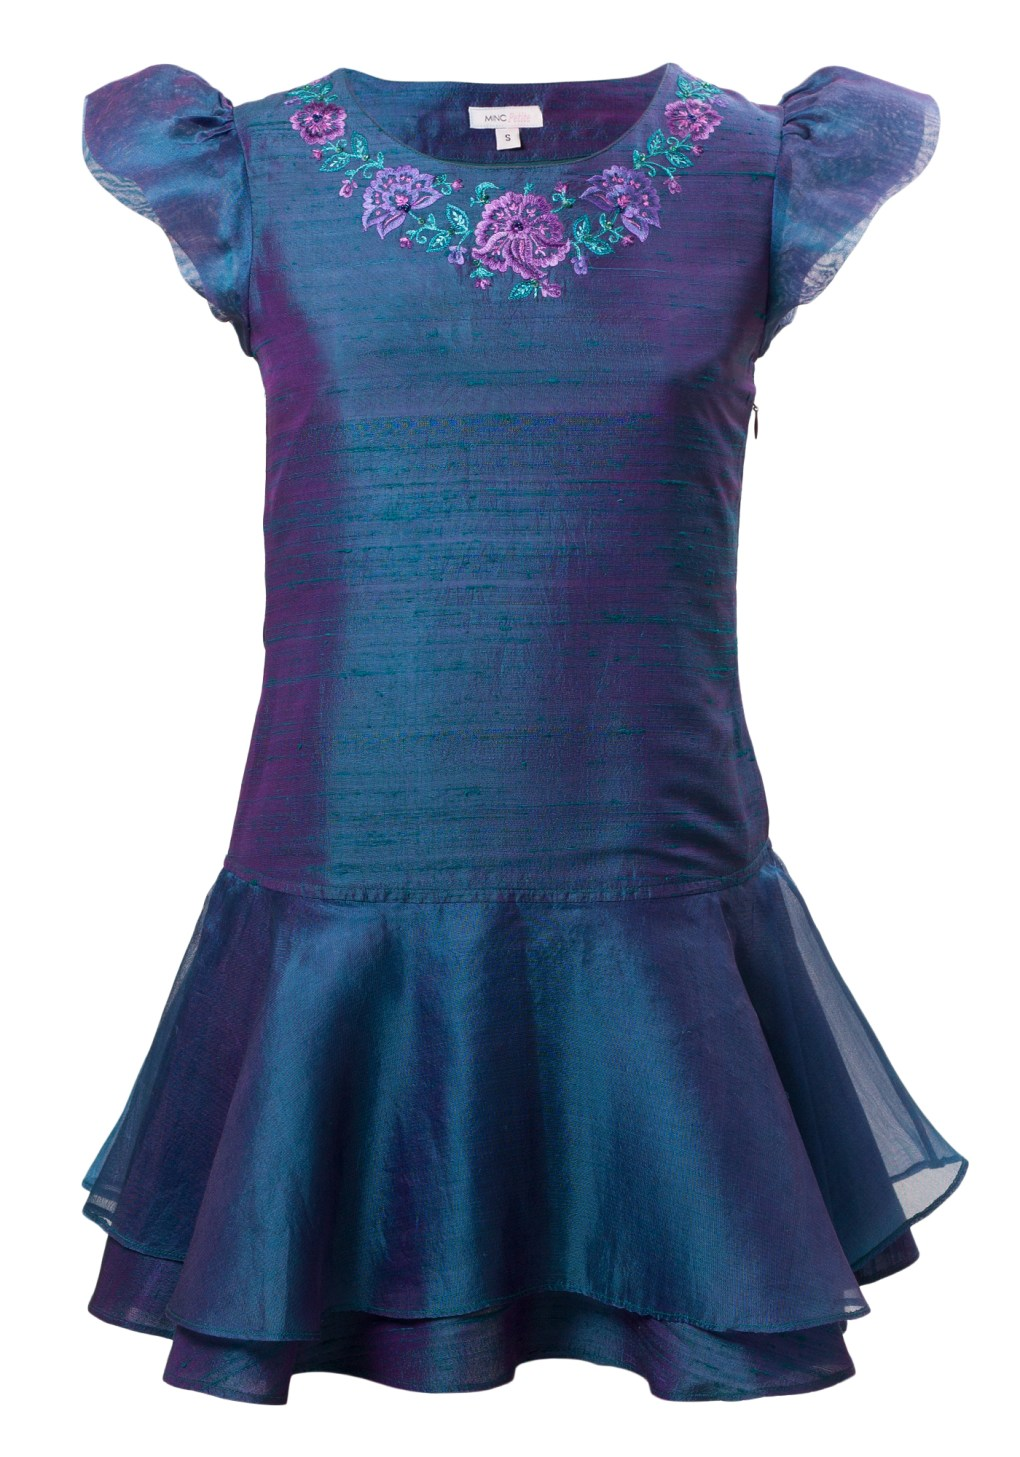 Peacock Blue Girls Short Dress in Blue Silk with floral motif around neck and skirt and sleeves made of silk organza